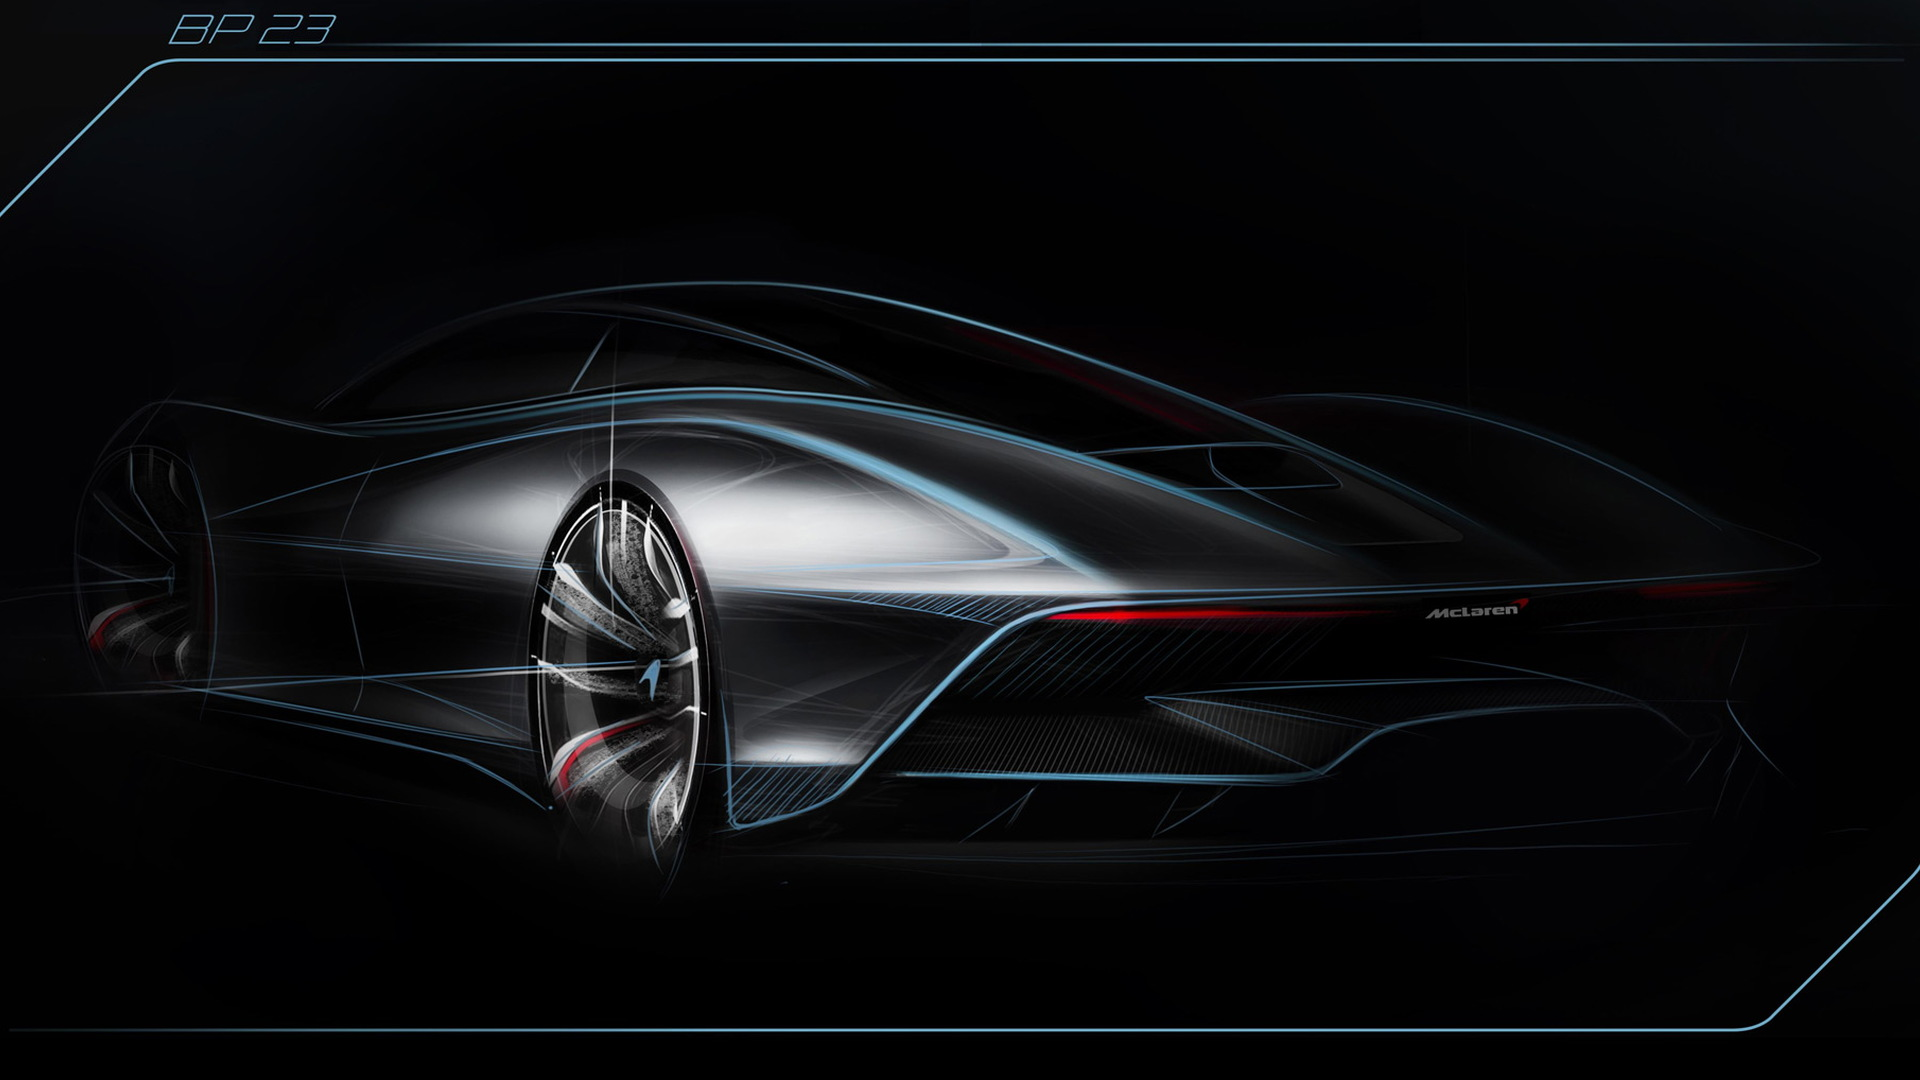 Teaser for McLaren Speedtail debuting October 26